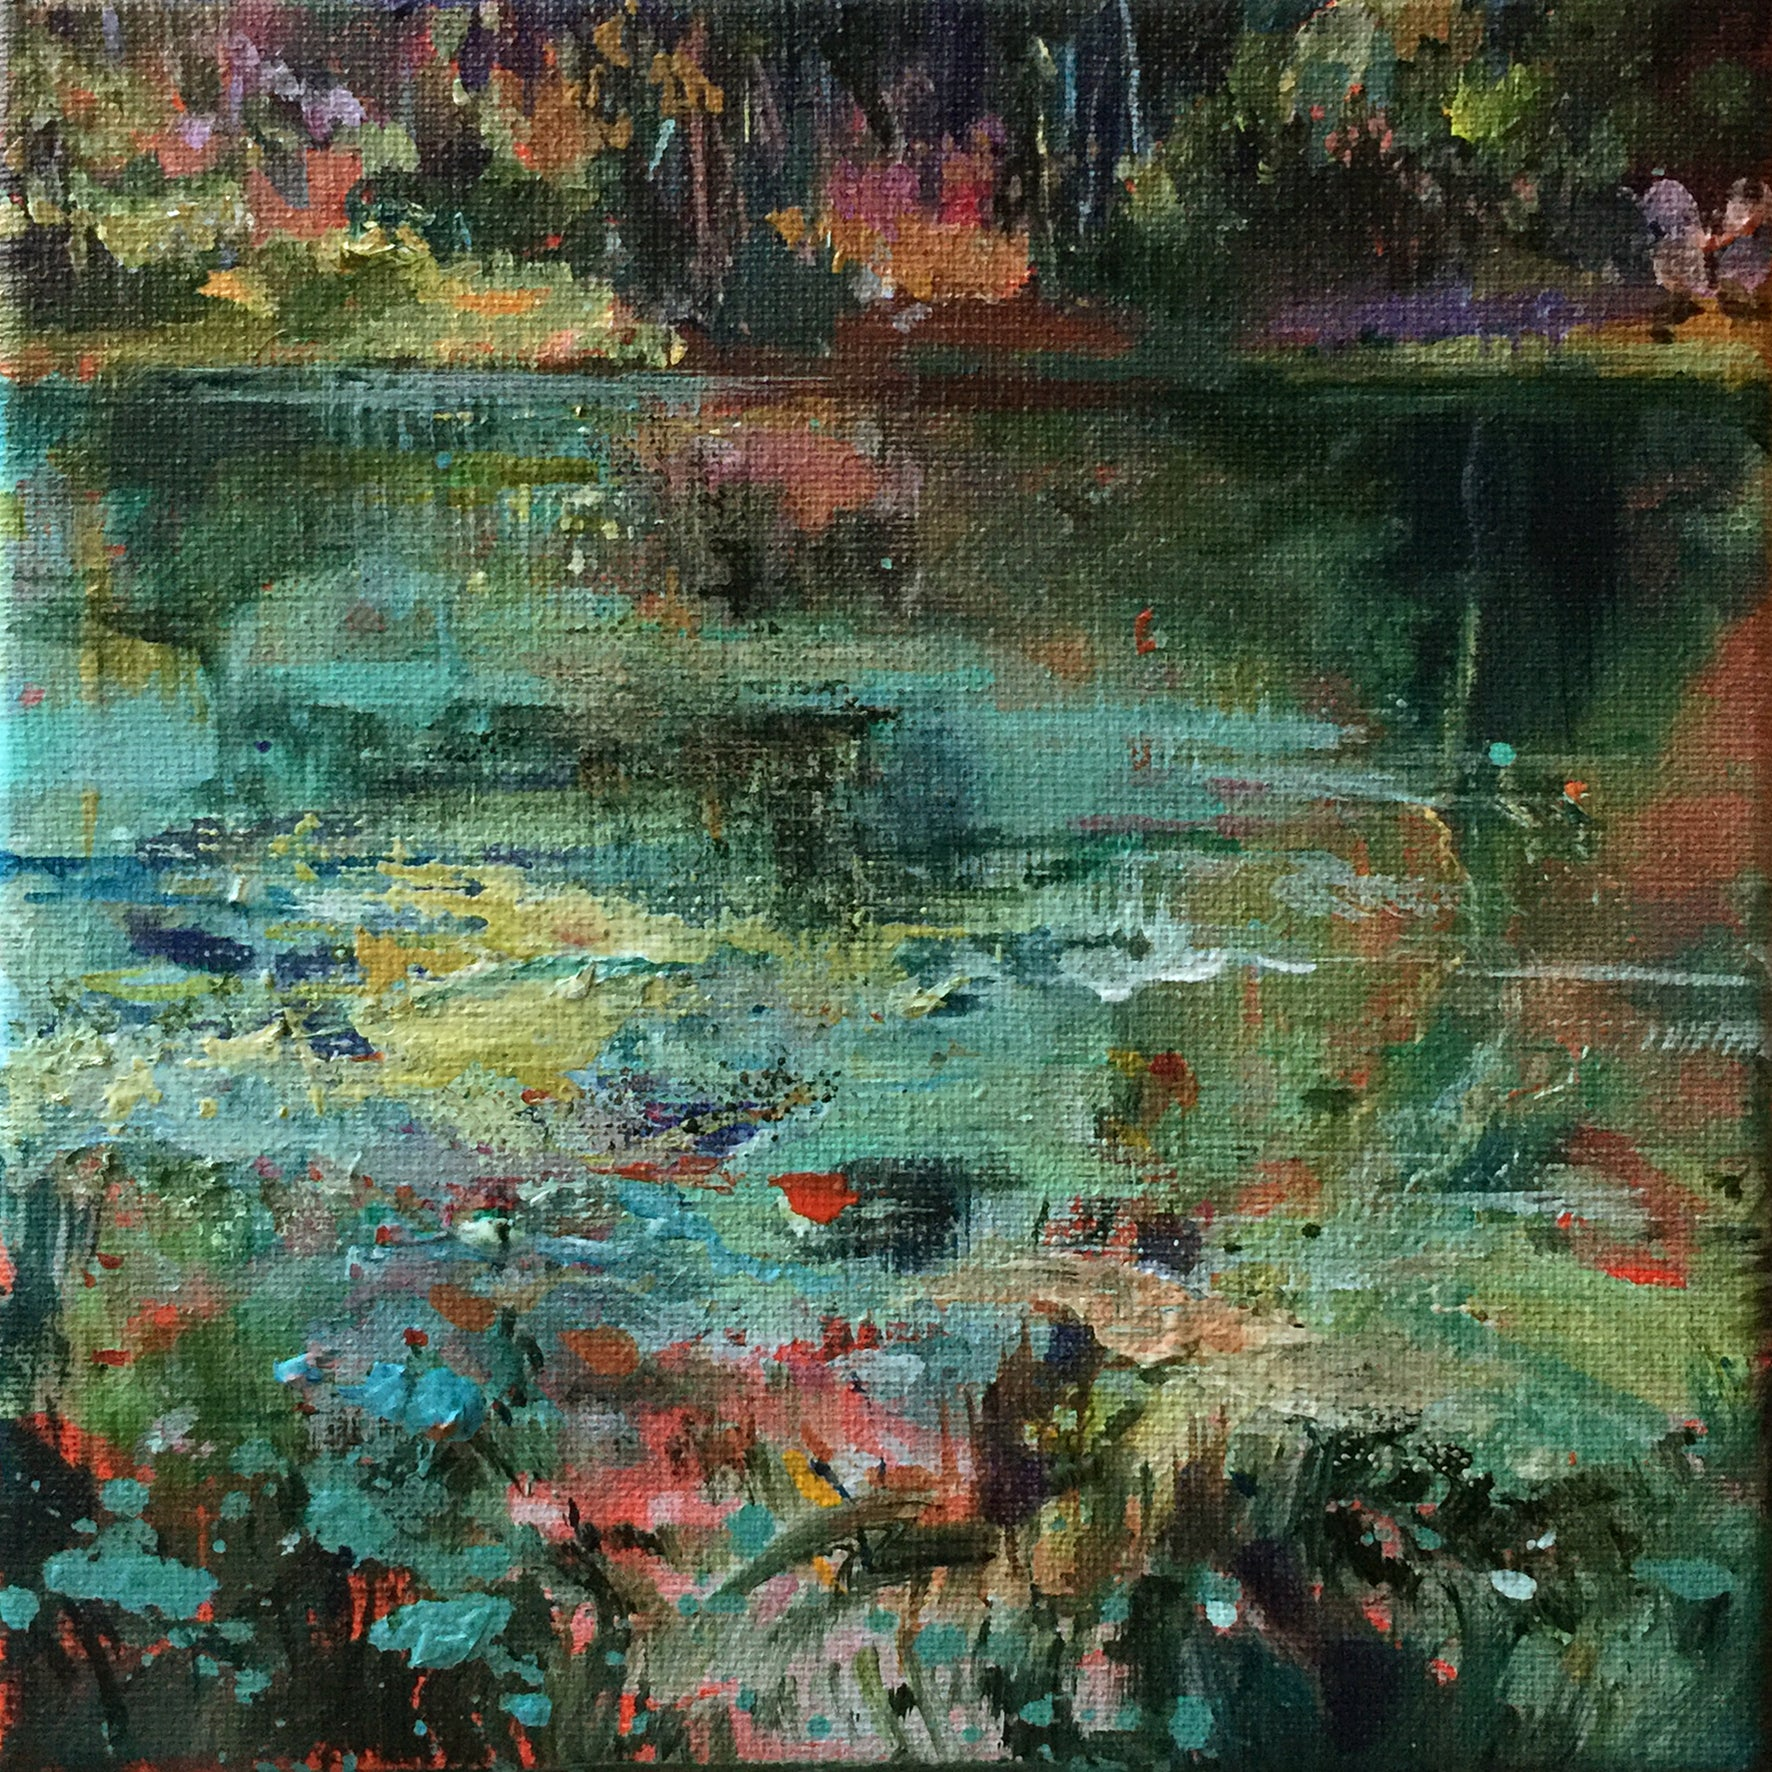 waterstories-whispers-autumnwater-5-Lies-Goemans-waterscape-paintings-20x20cm-basis